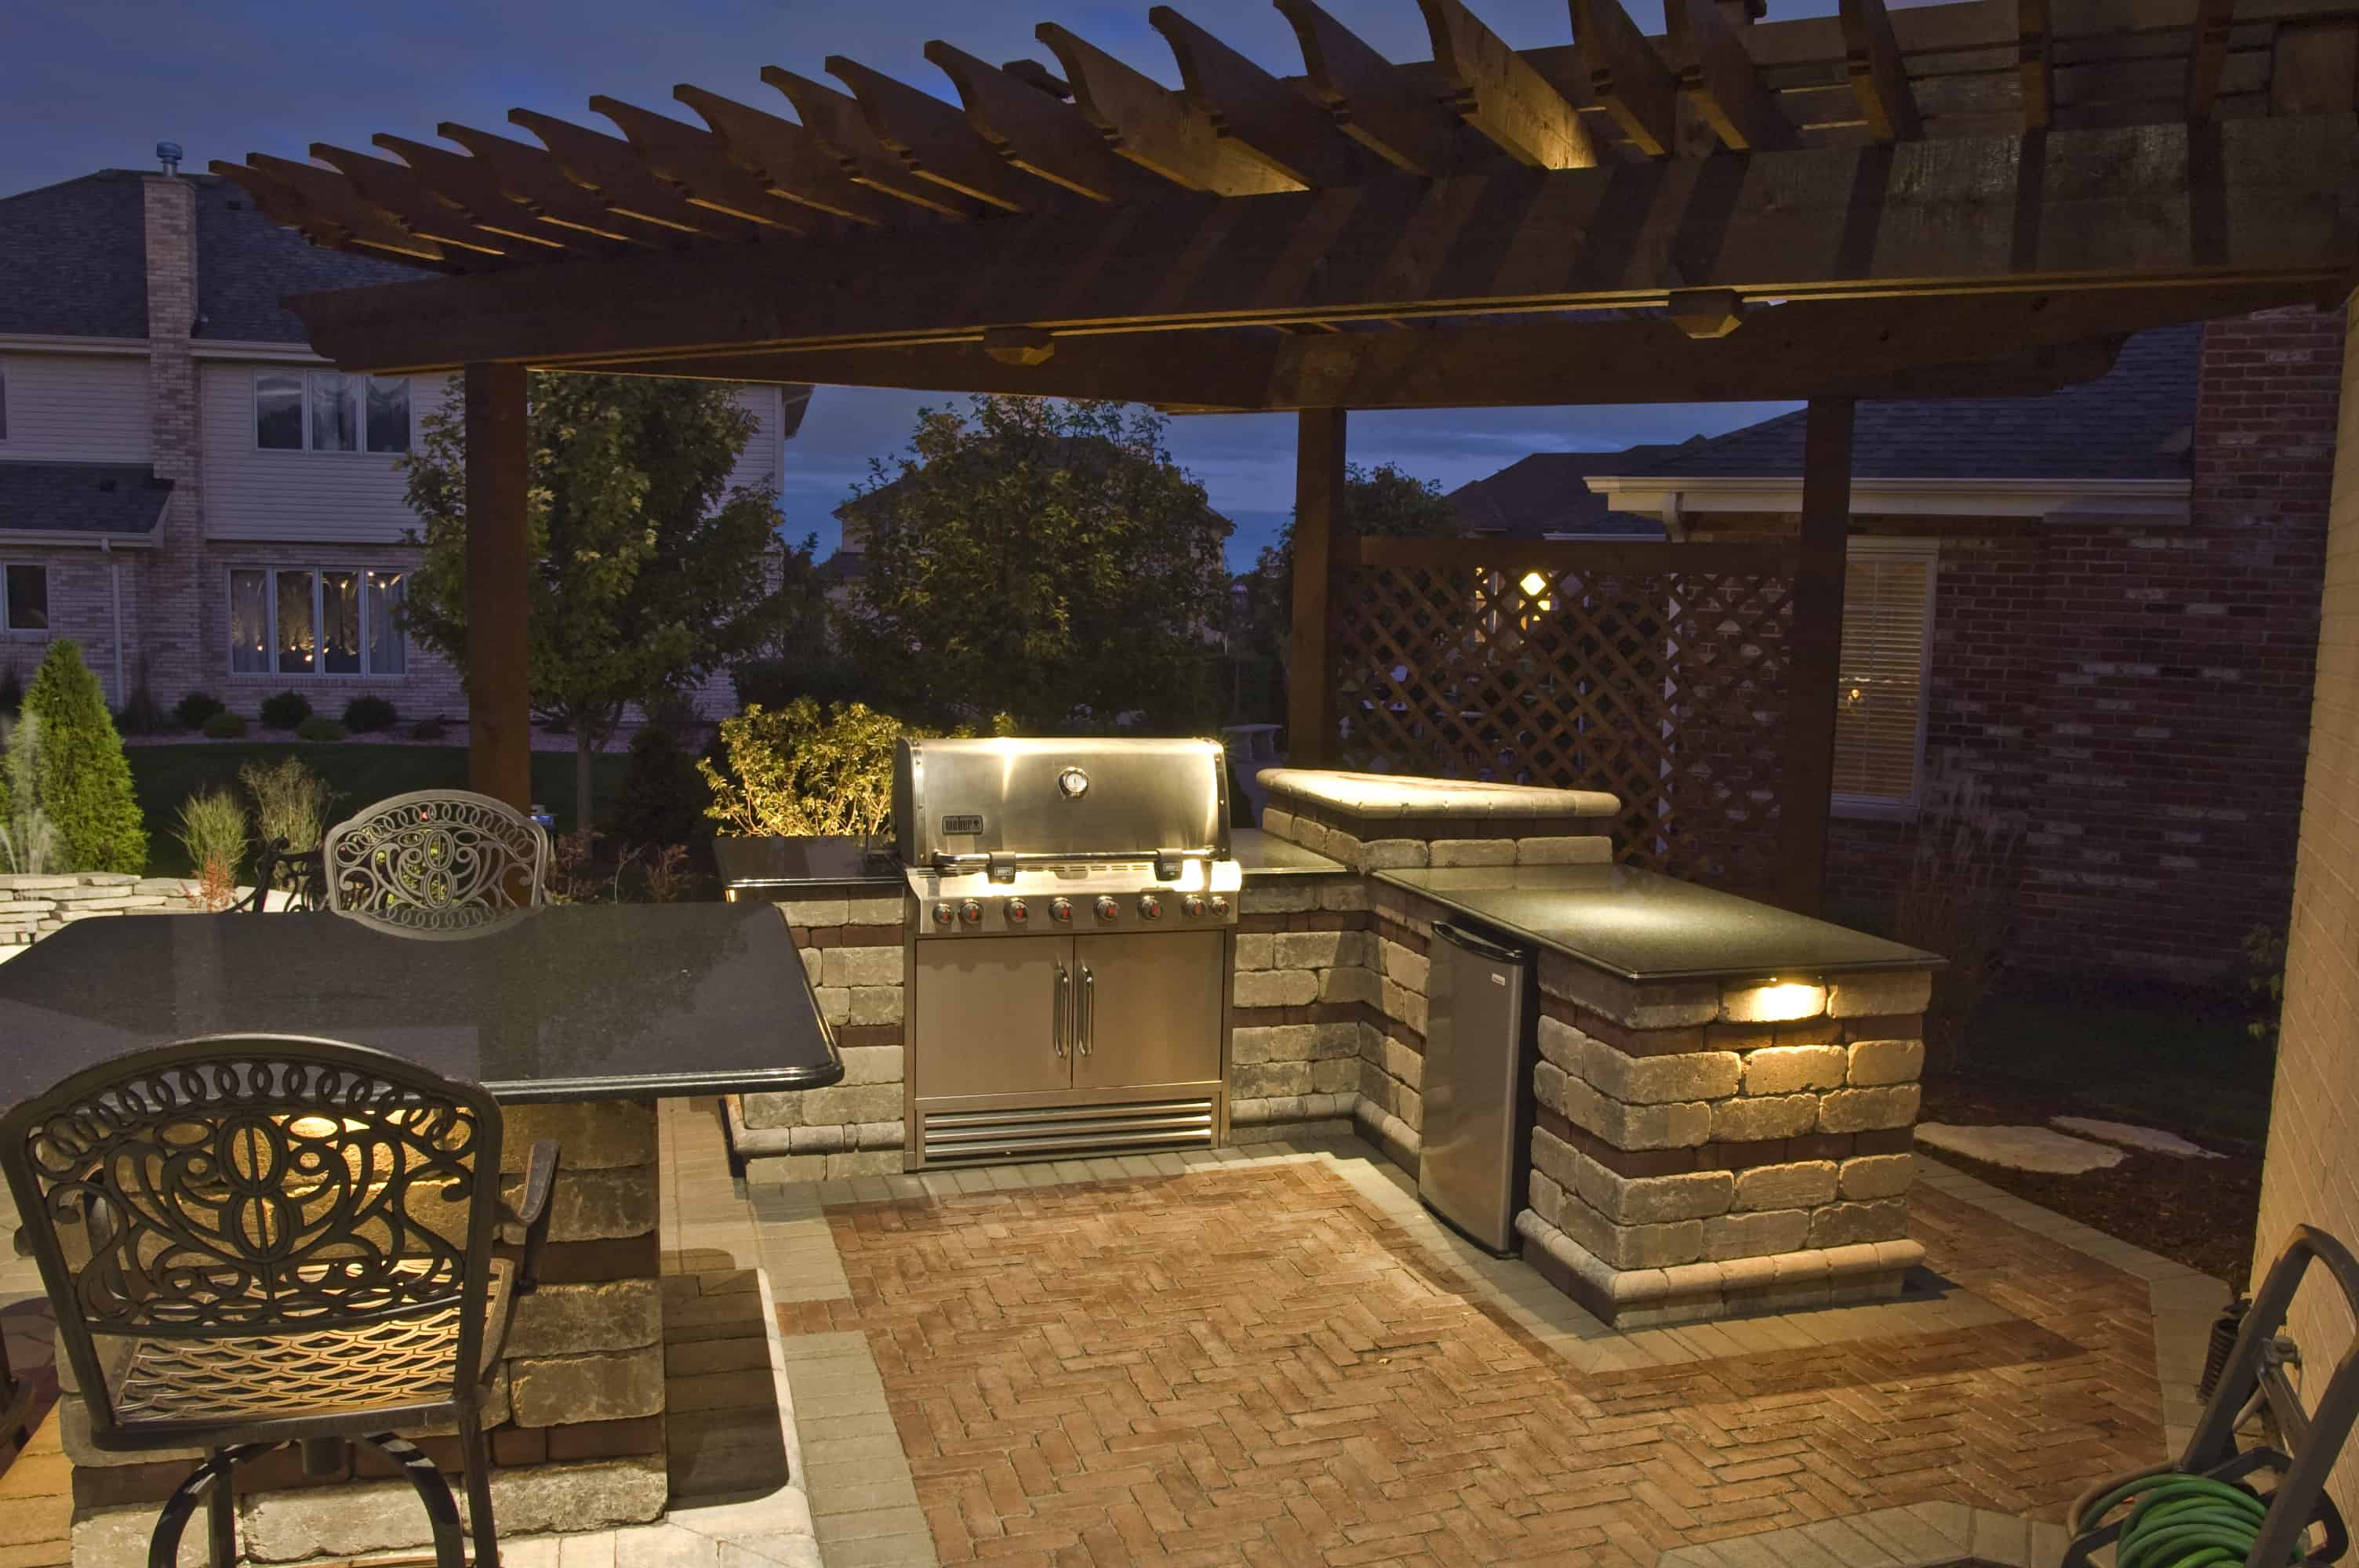 Kitchen Bars And Grills Outdoor Lighting In Chicago IL Outdoor - Kitchen lighting companies